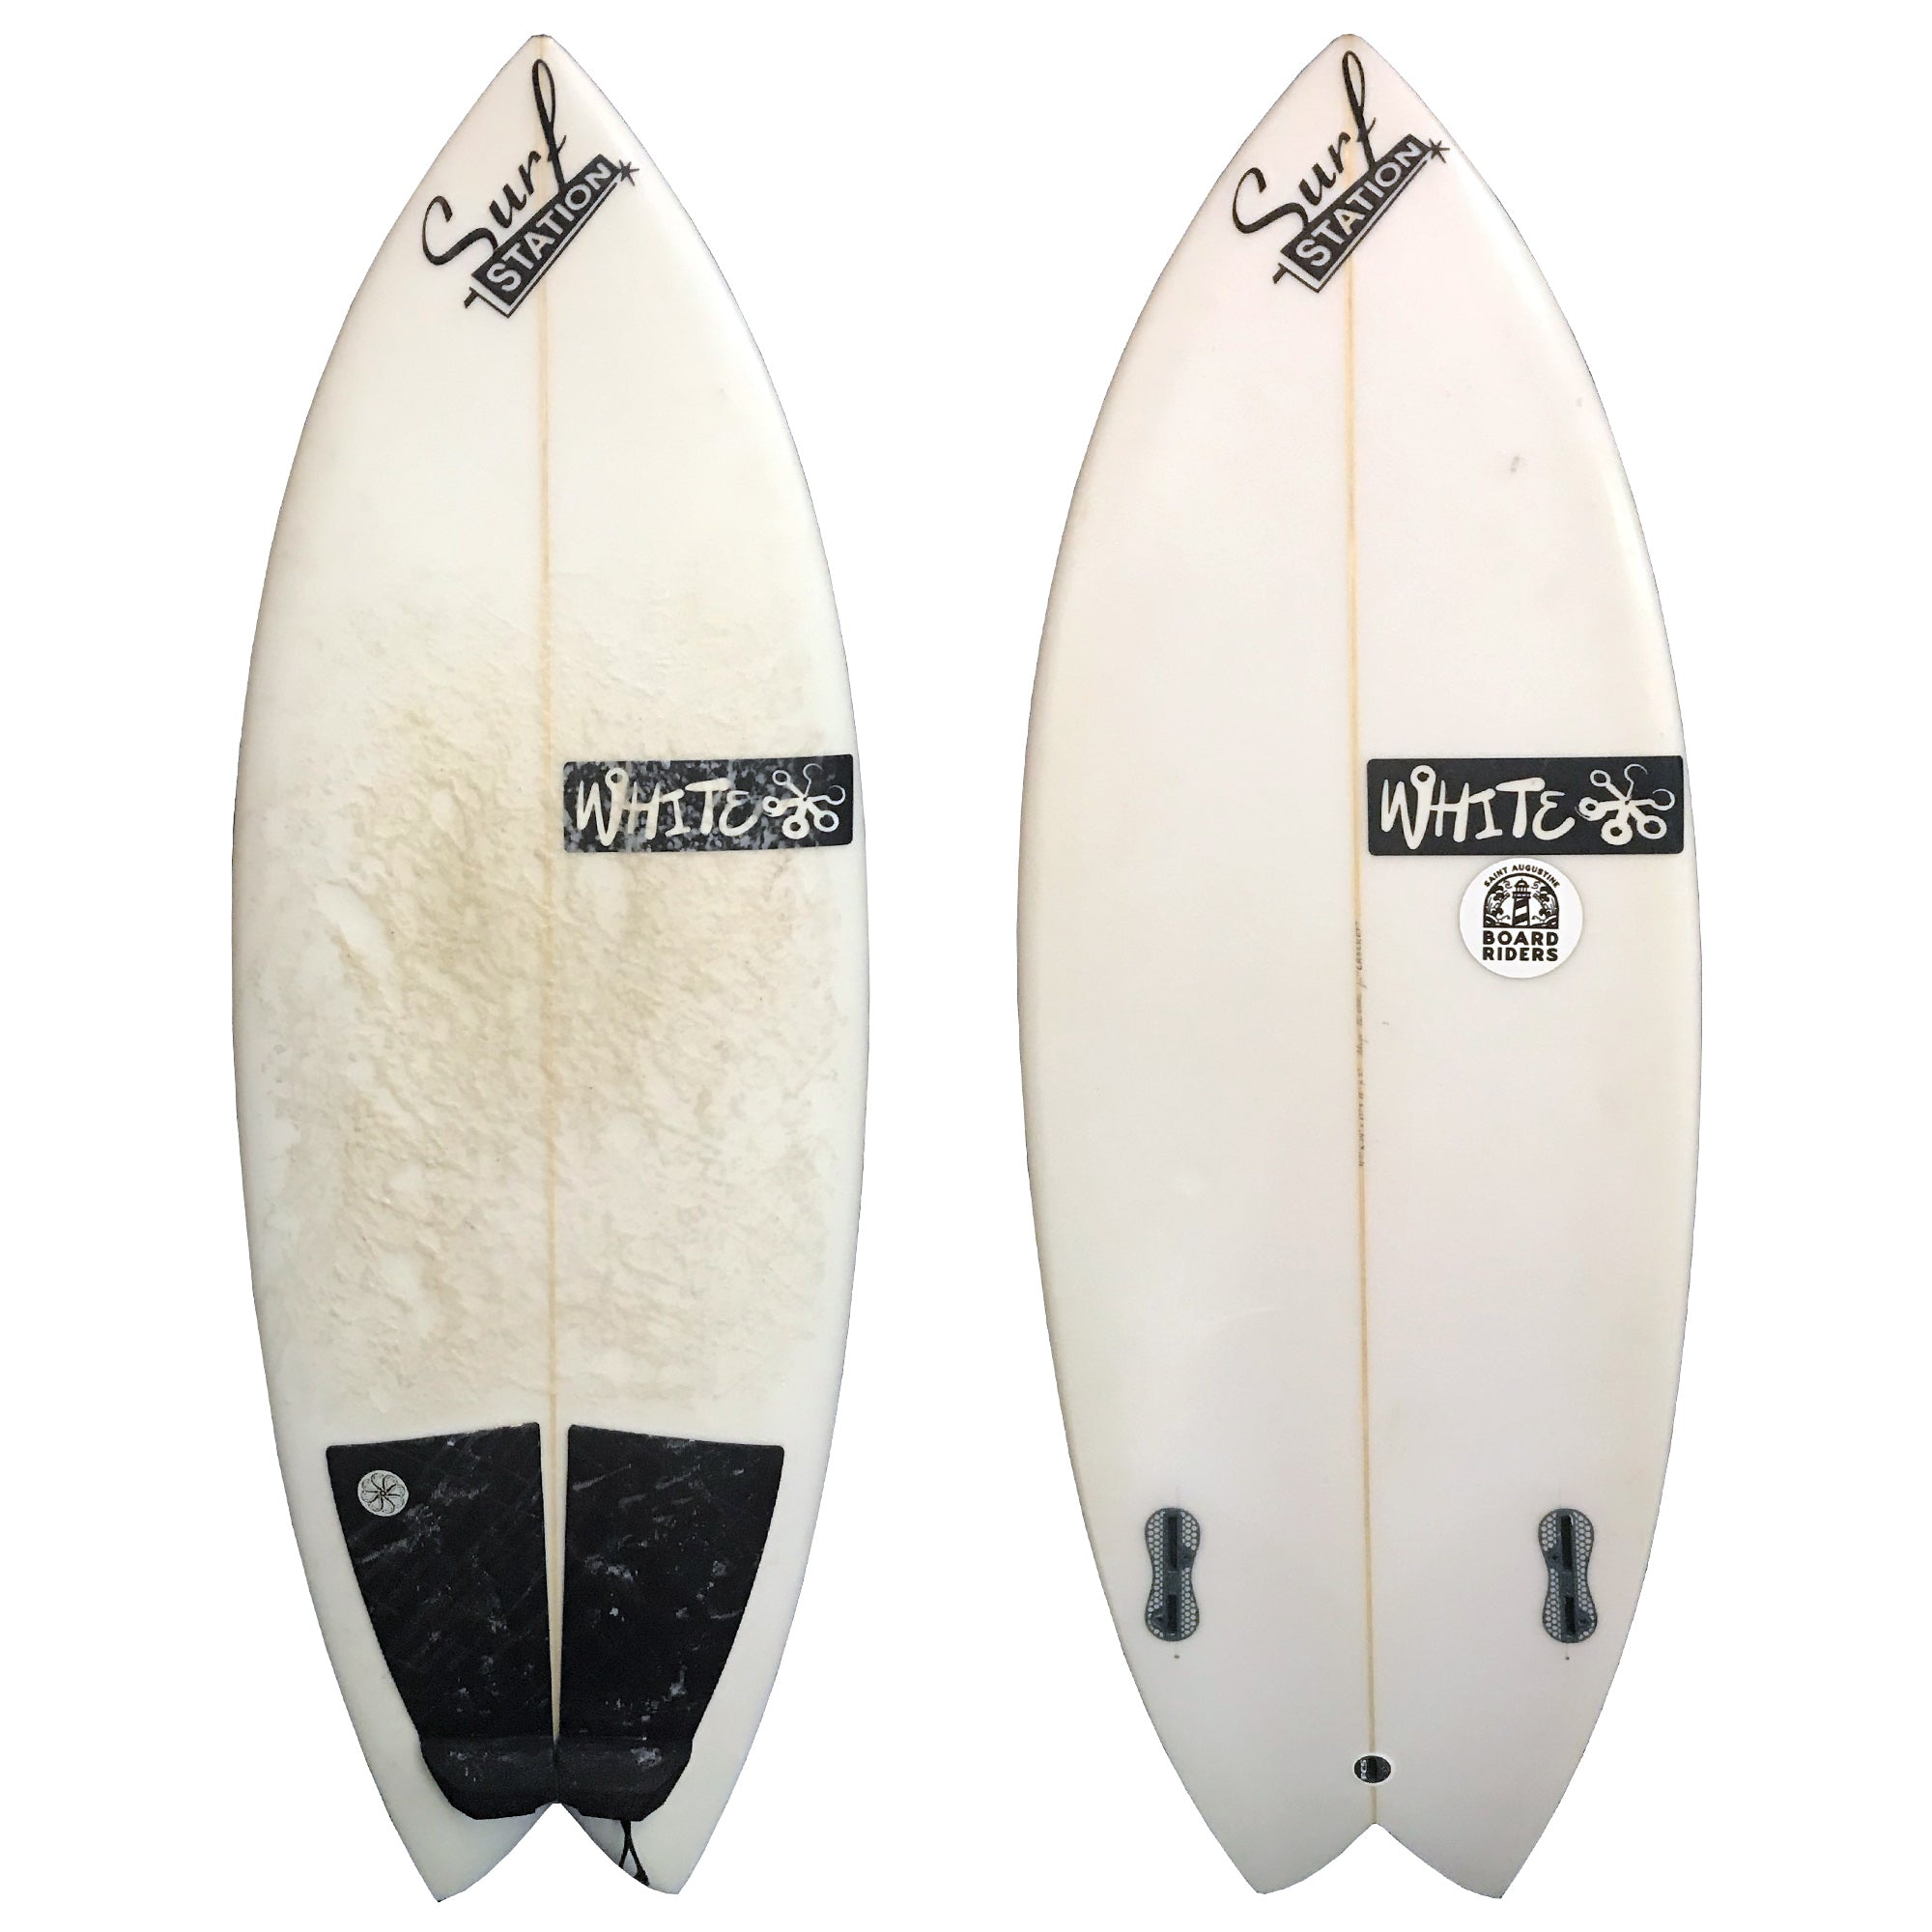 Ken White 4'2 Used Fish Surfboard